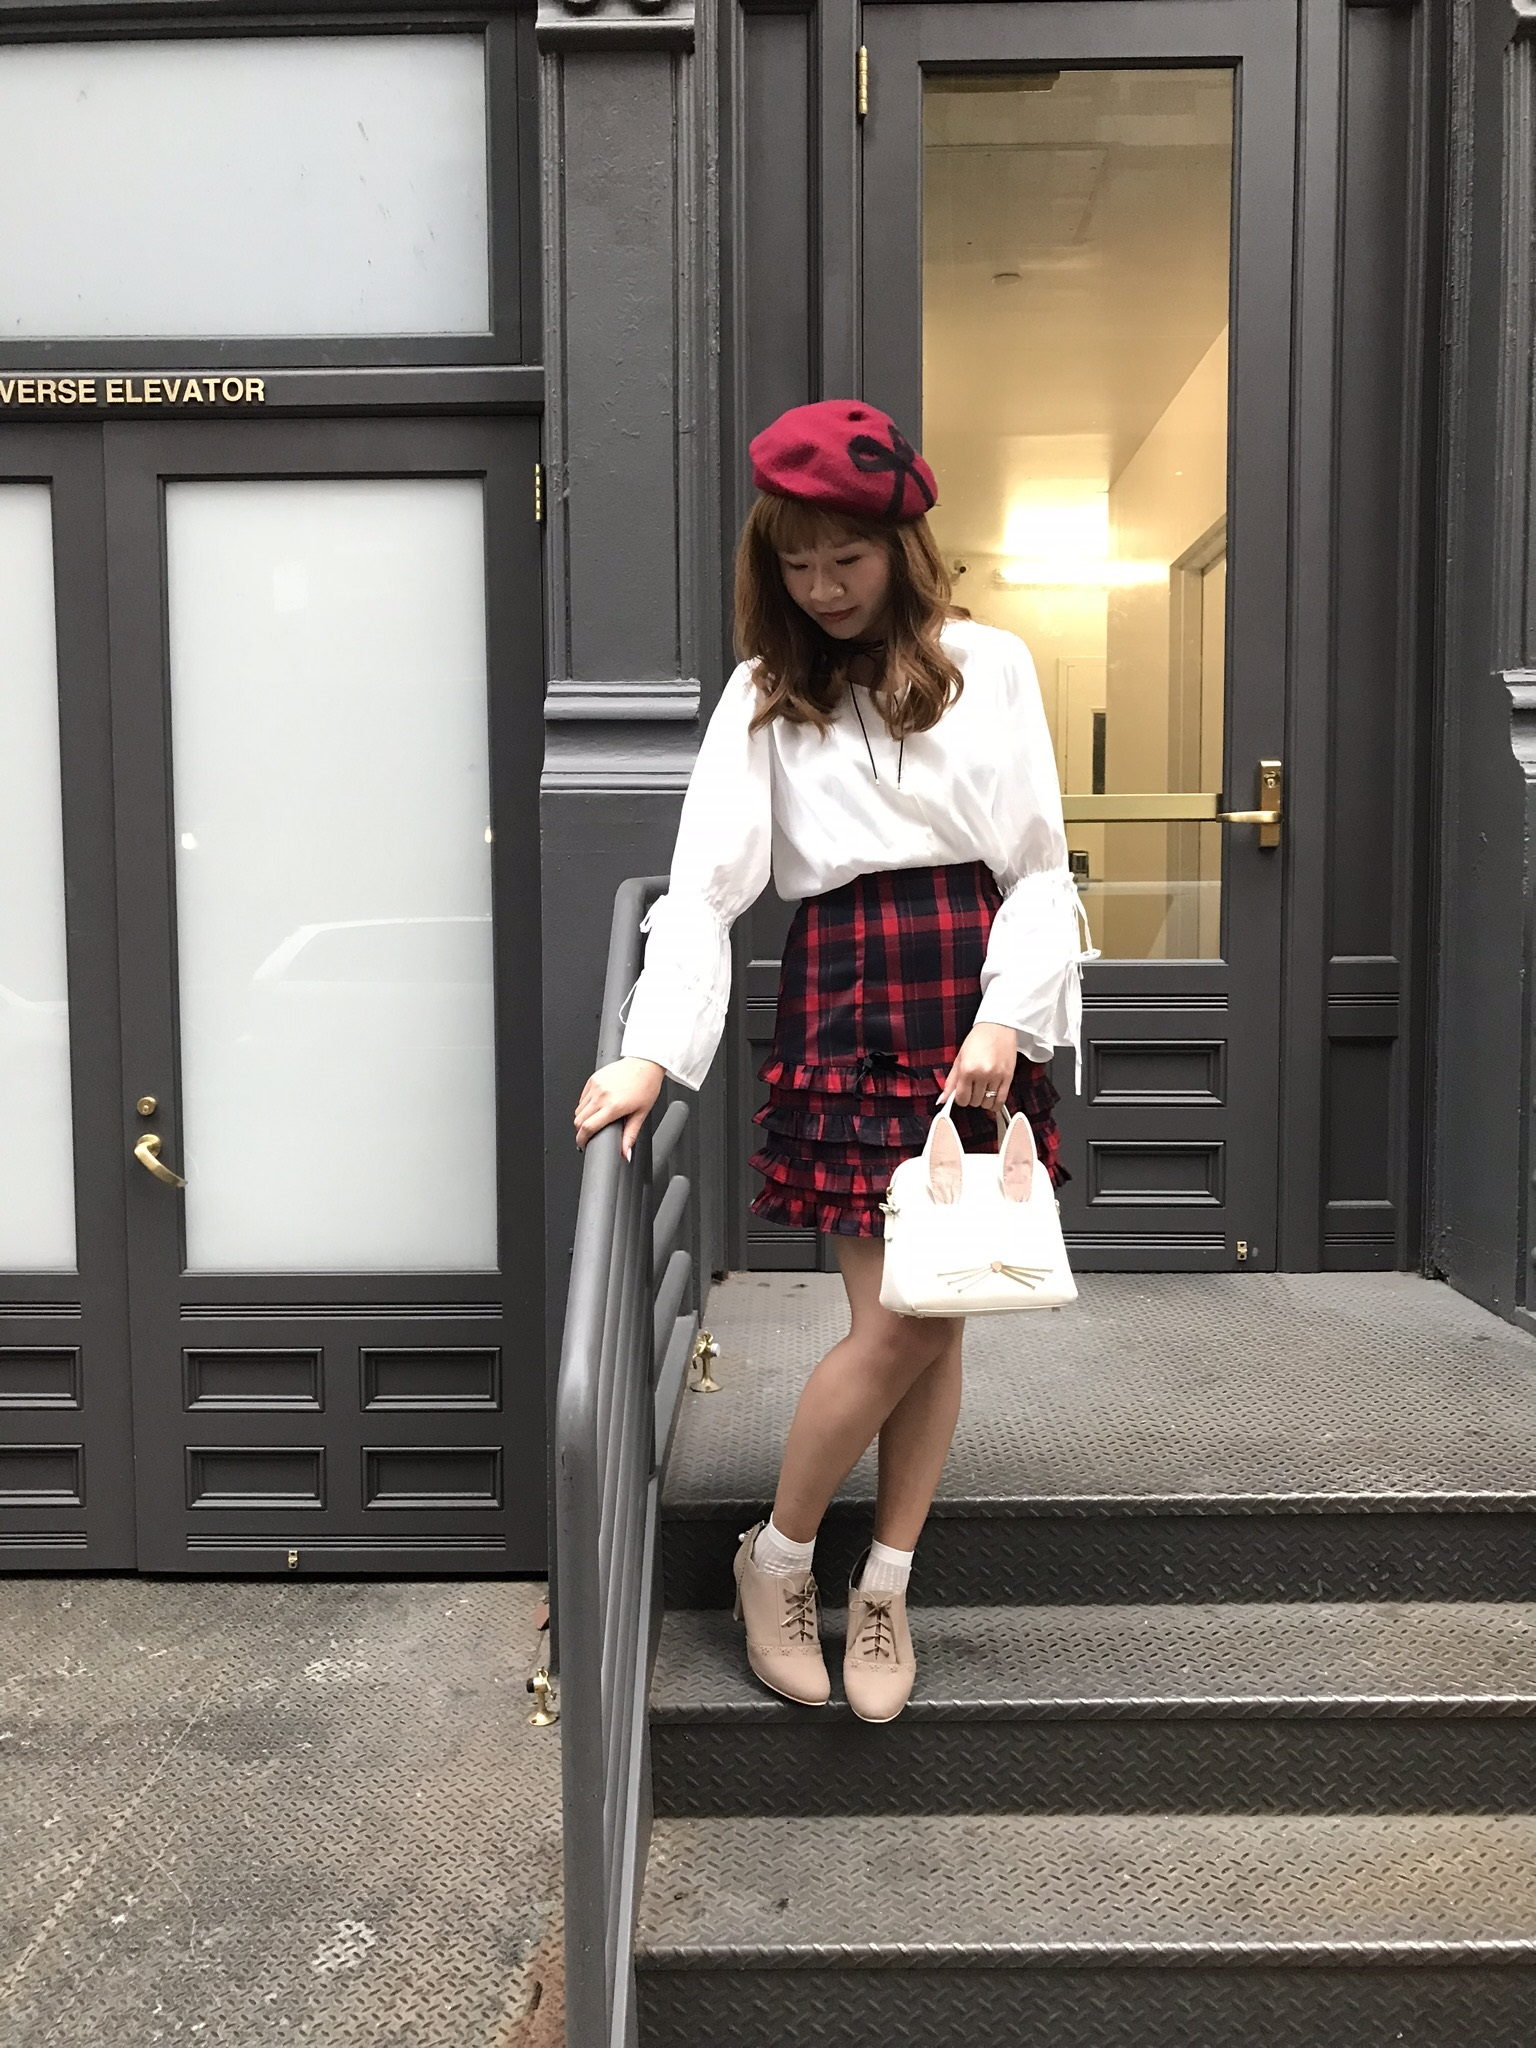 Top: dazzlin; skirt: Ank Rouge; shoes: LODISPOTTO; bag: Kate Spade; hat: tocco closet; necklace: INGNI; socks: tutuanna.